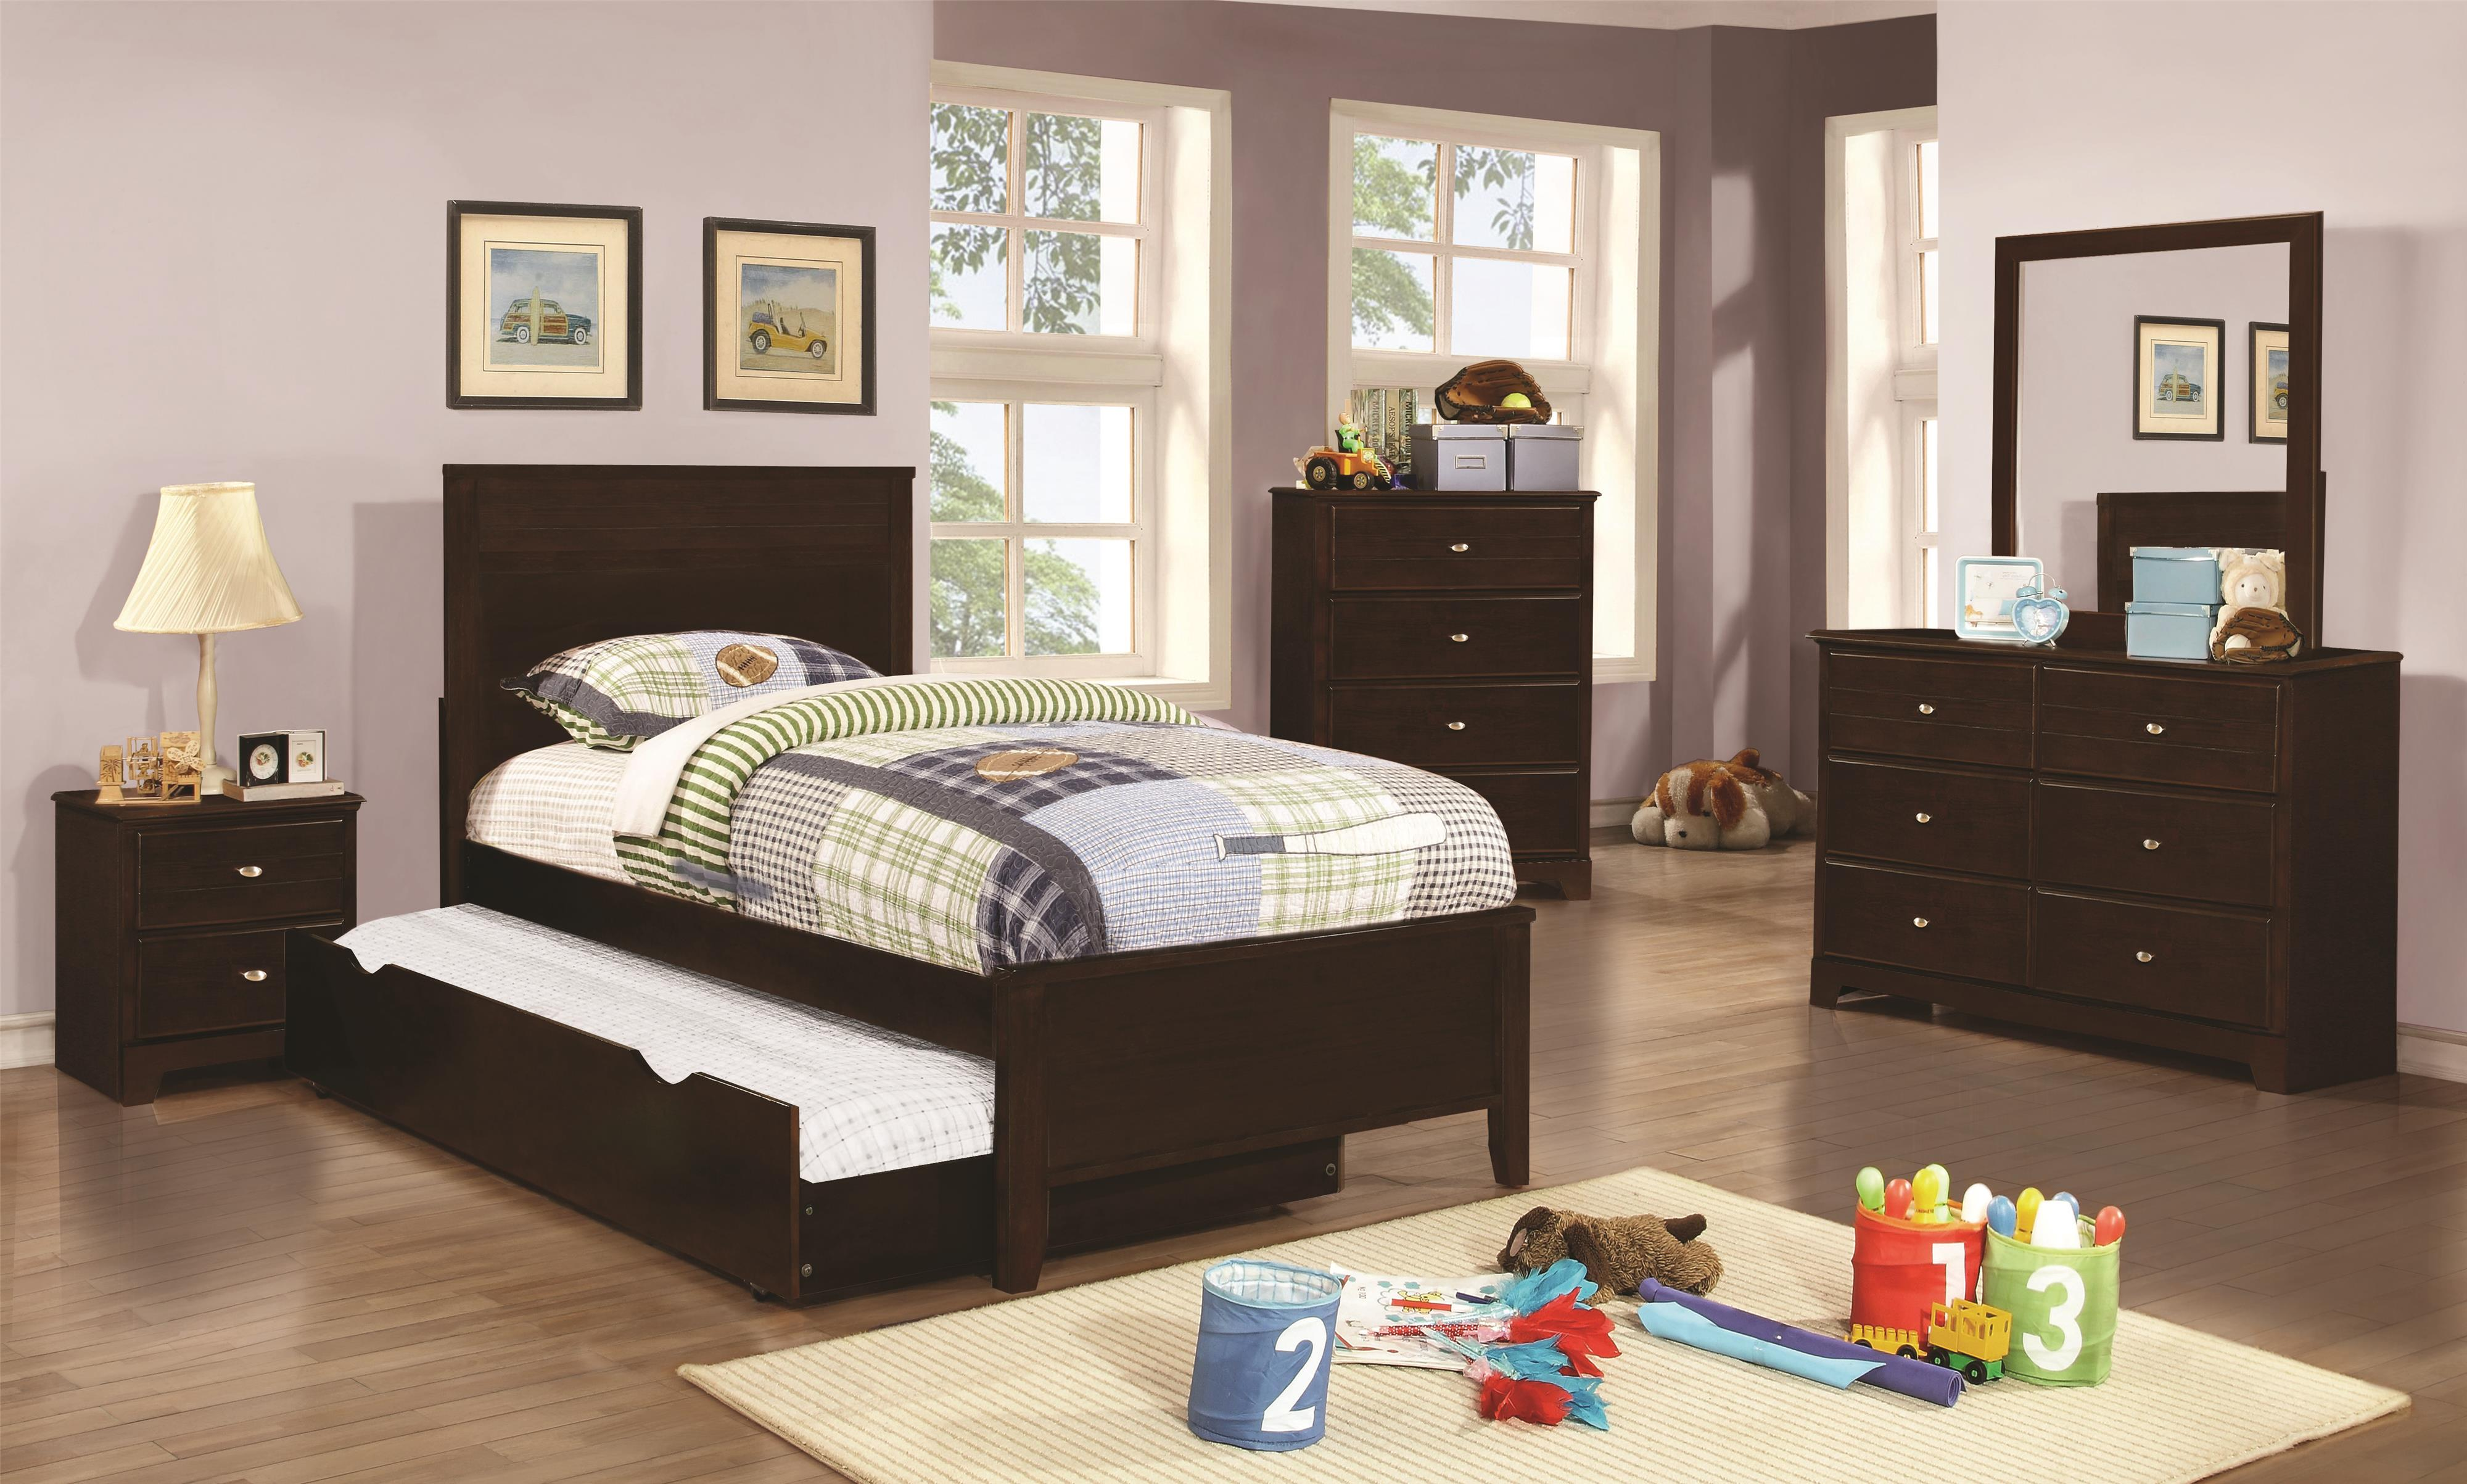 full home bedroom sets set interior rooms to go